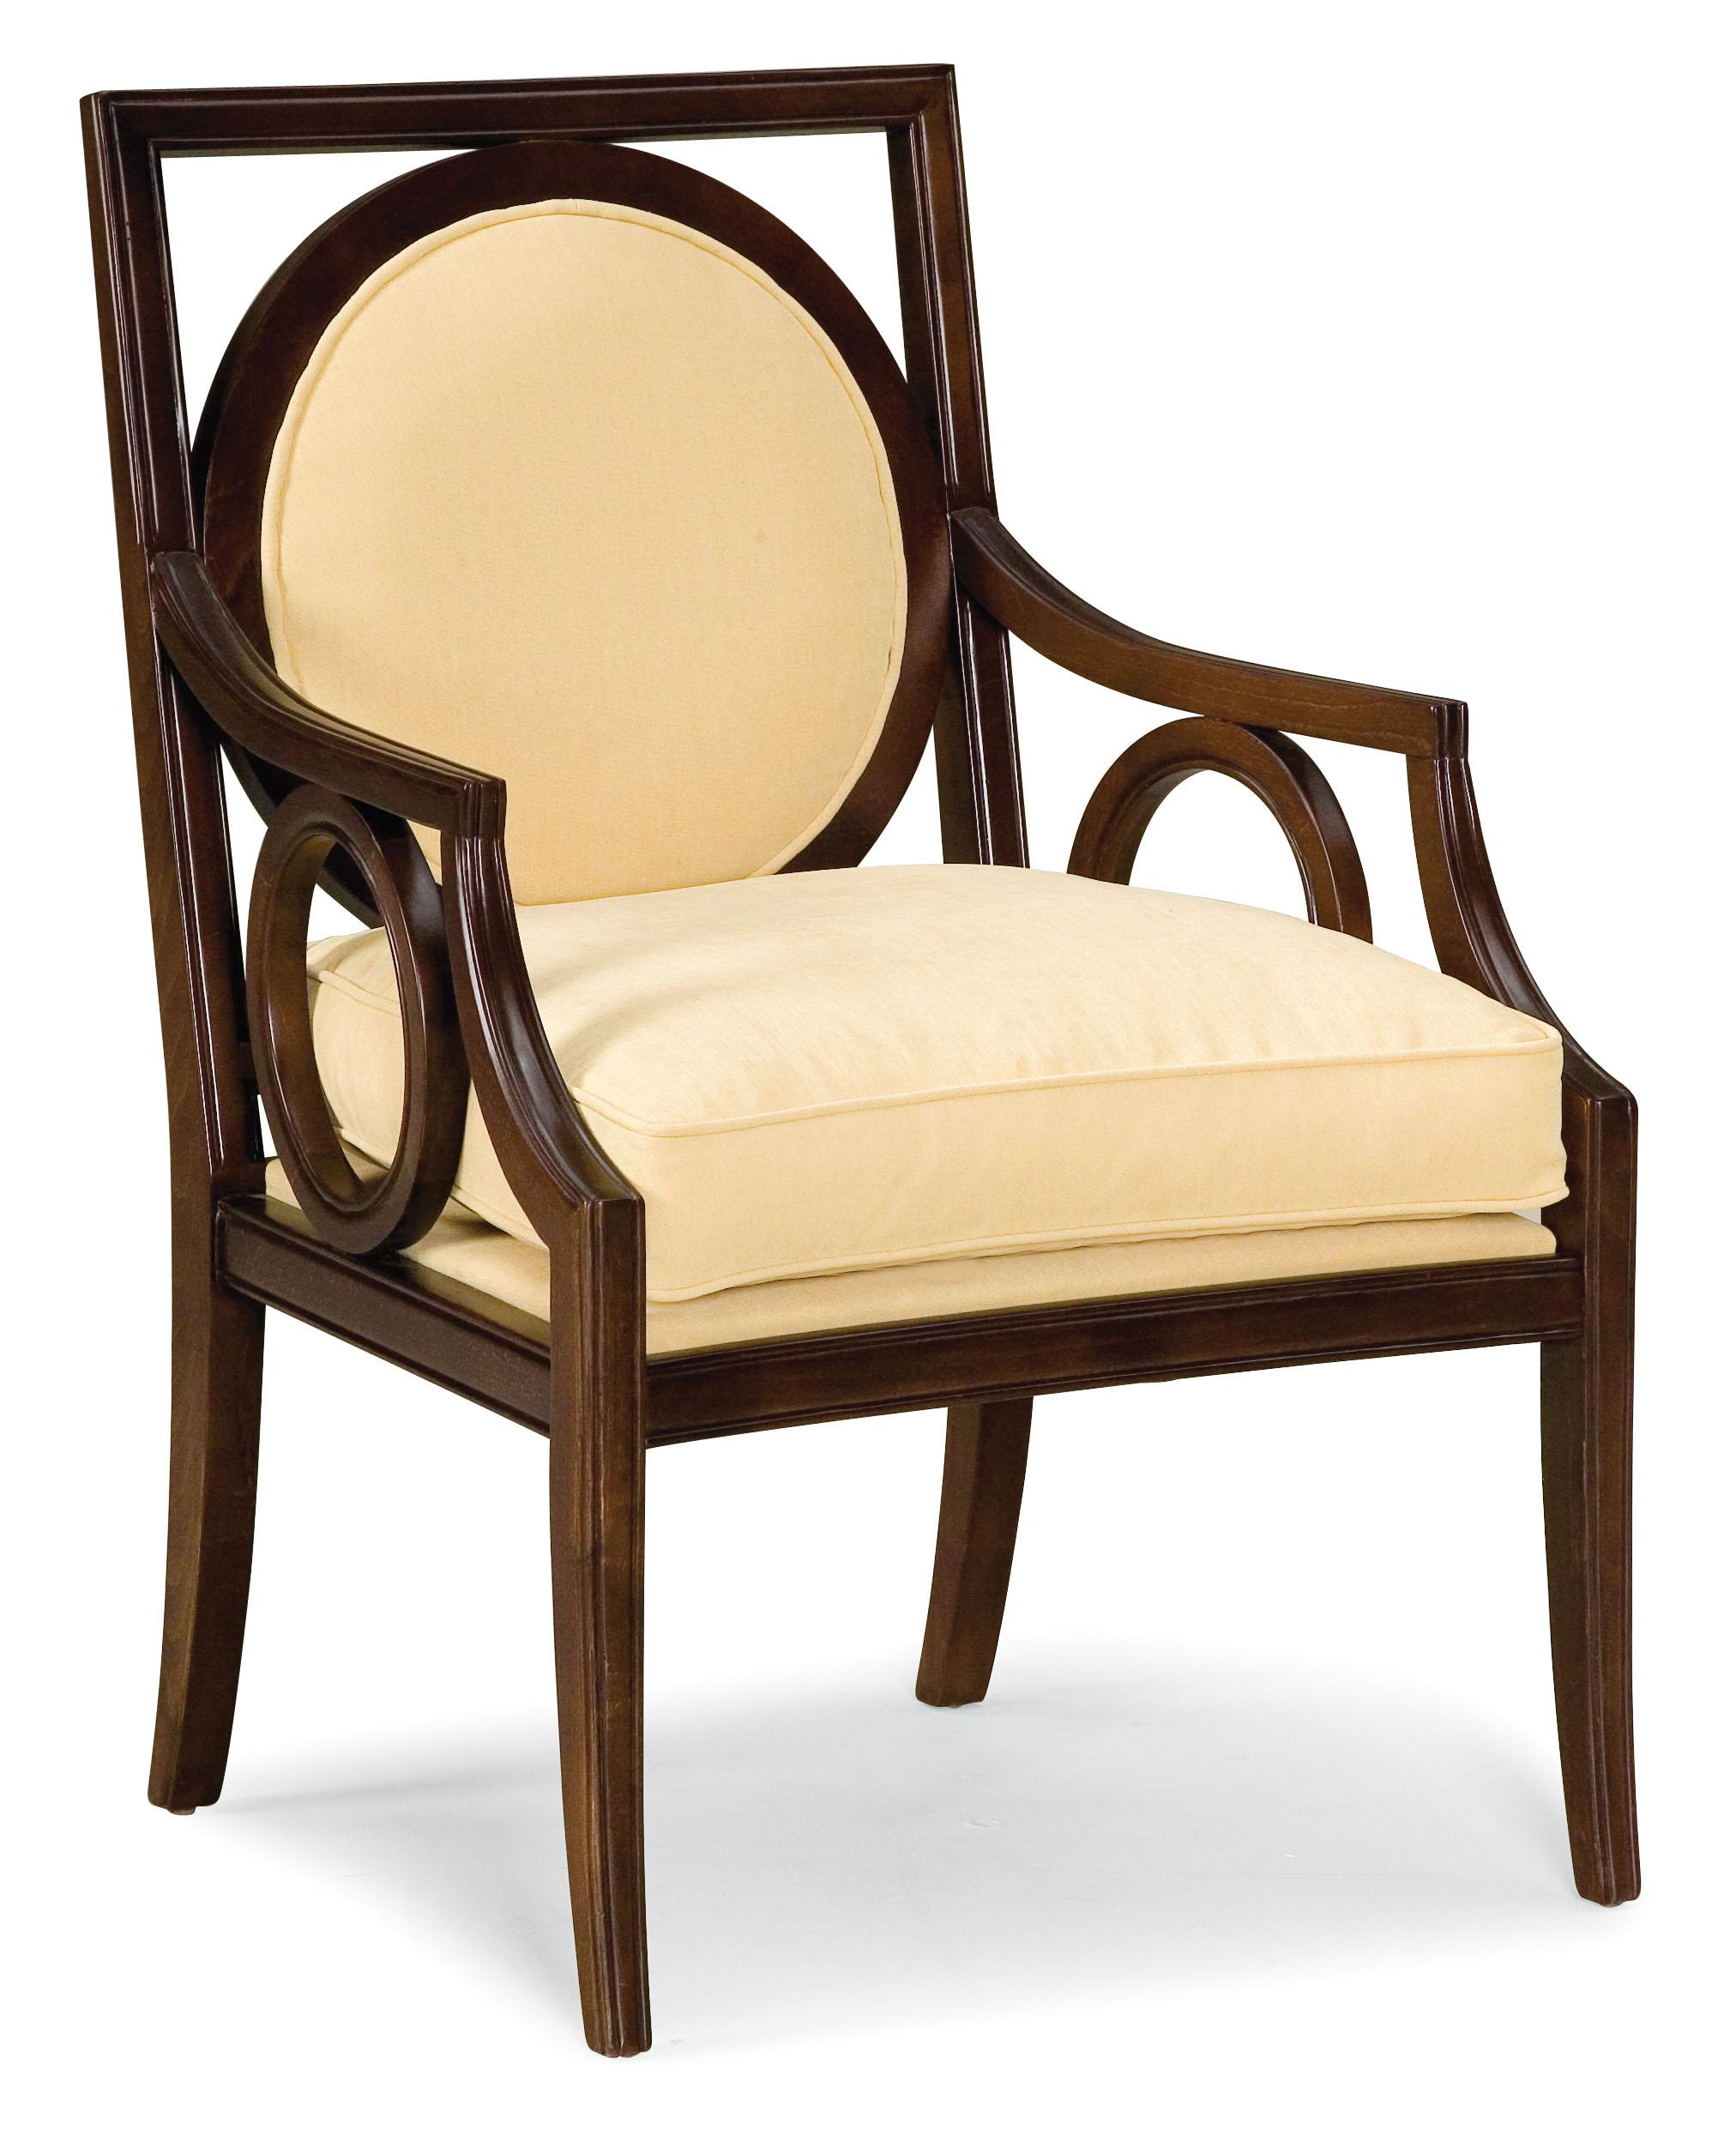 Fairfield Chairs Exposed Wood Chair - Item Number: 5422-01